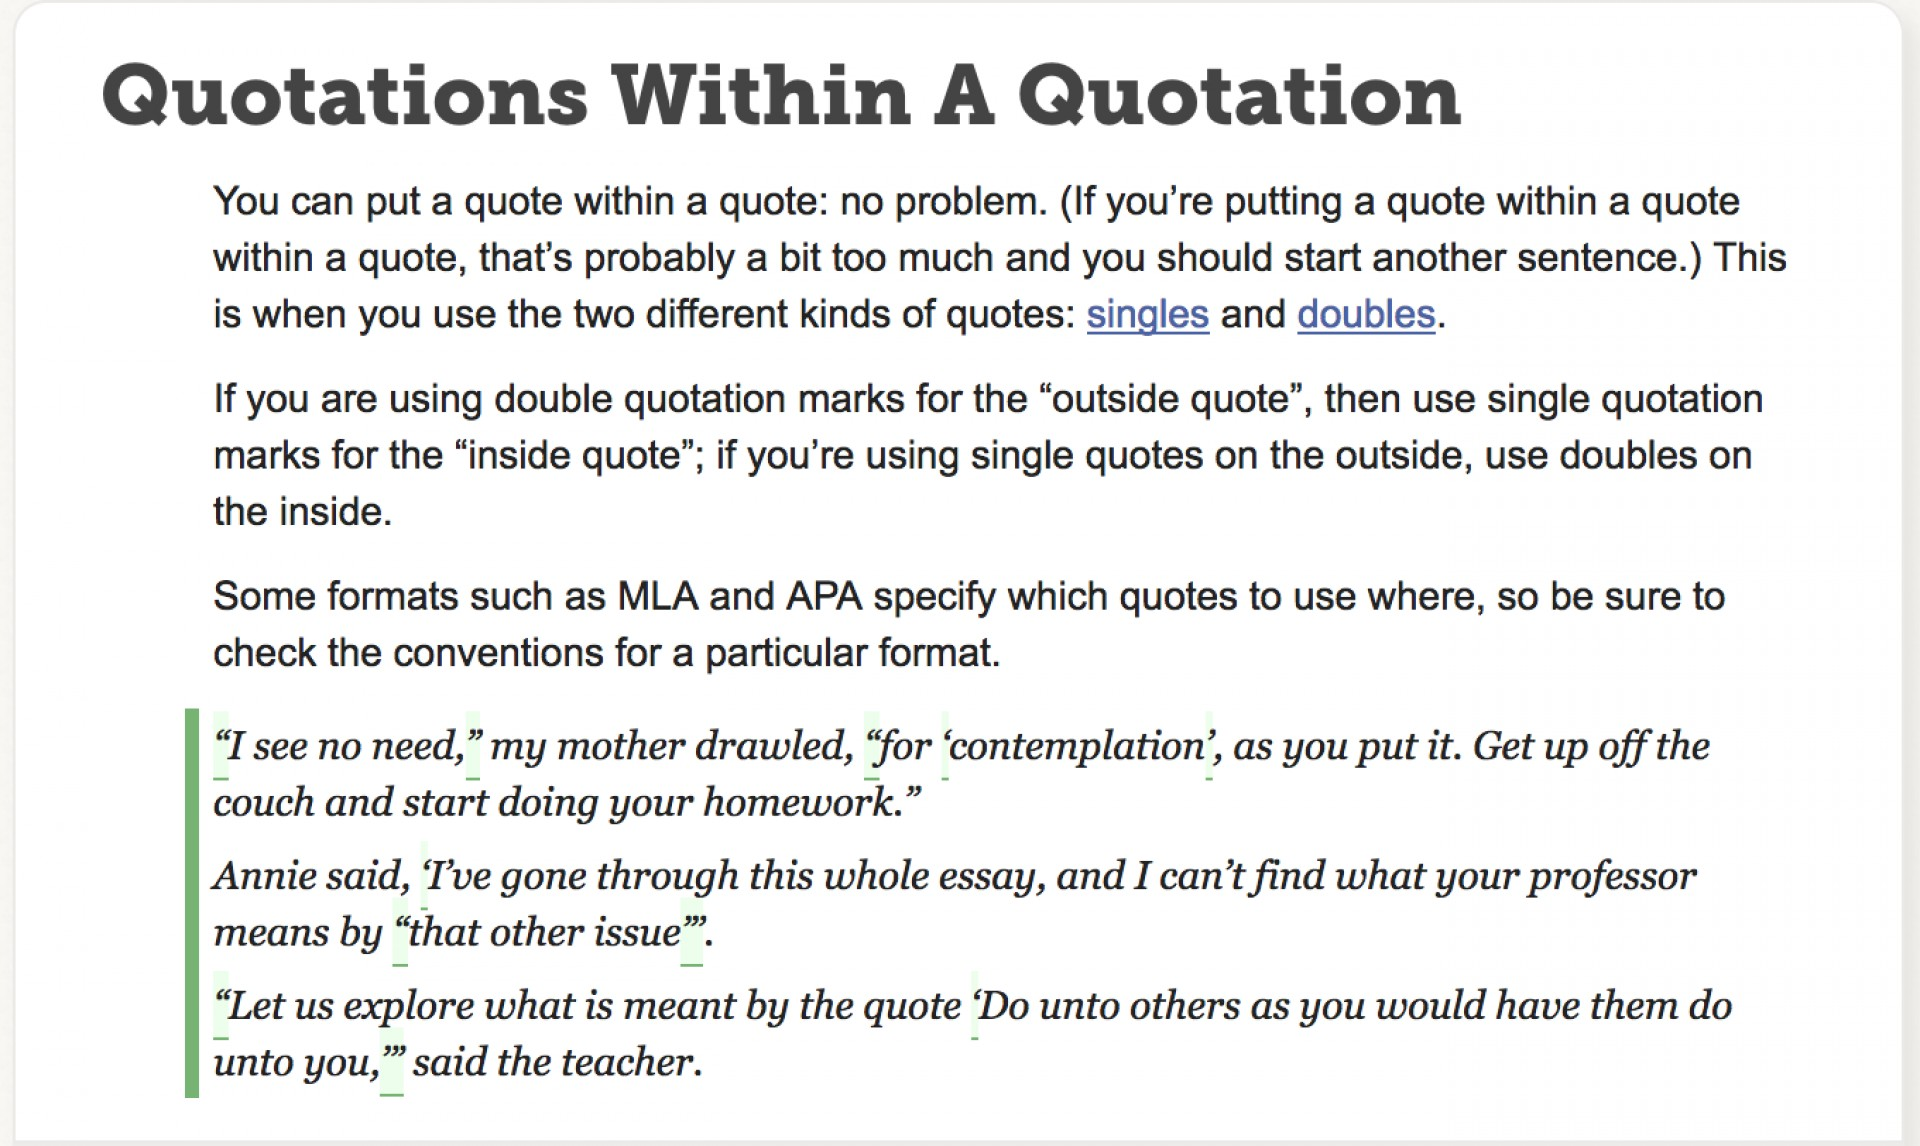 002 Essay Example Screen Shot At Pm How To Use Quotes In Fearsome An Apa Format Large Argumentative 1920